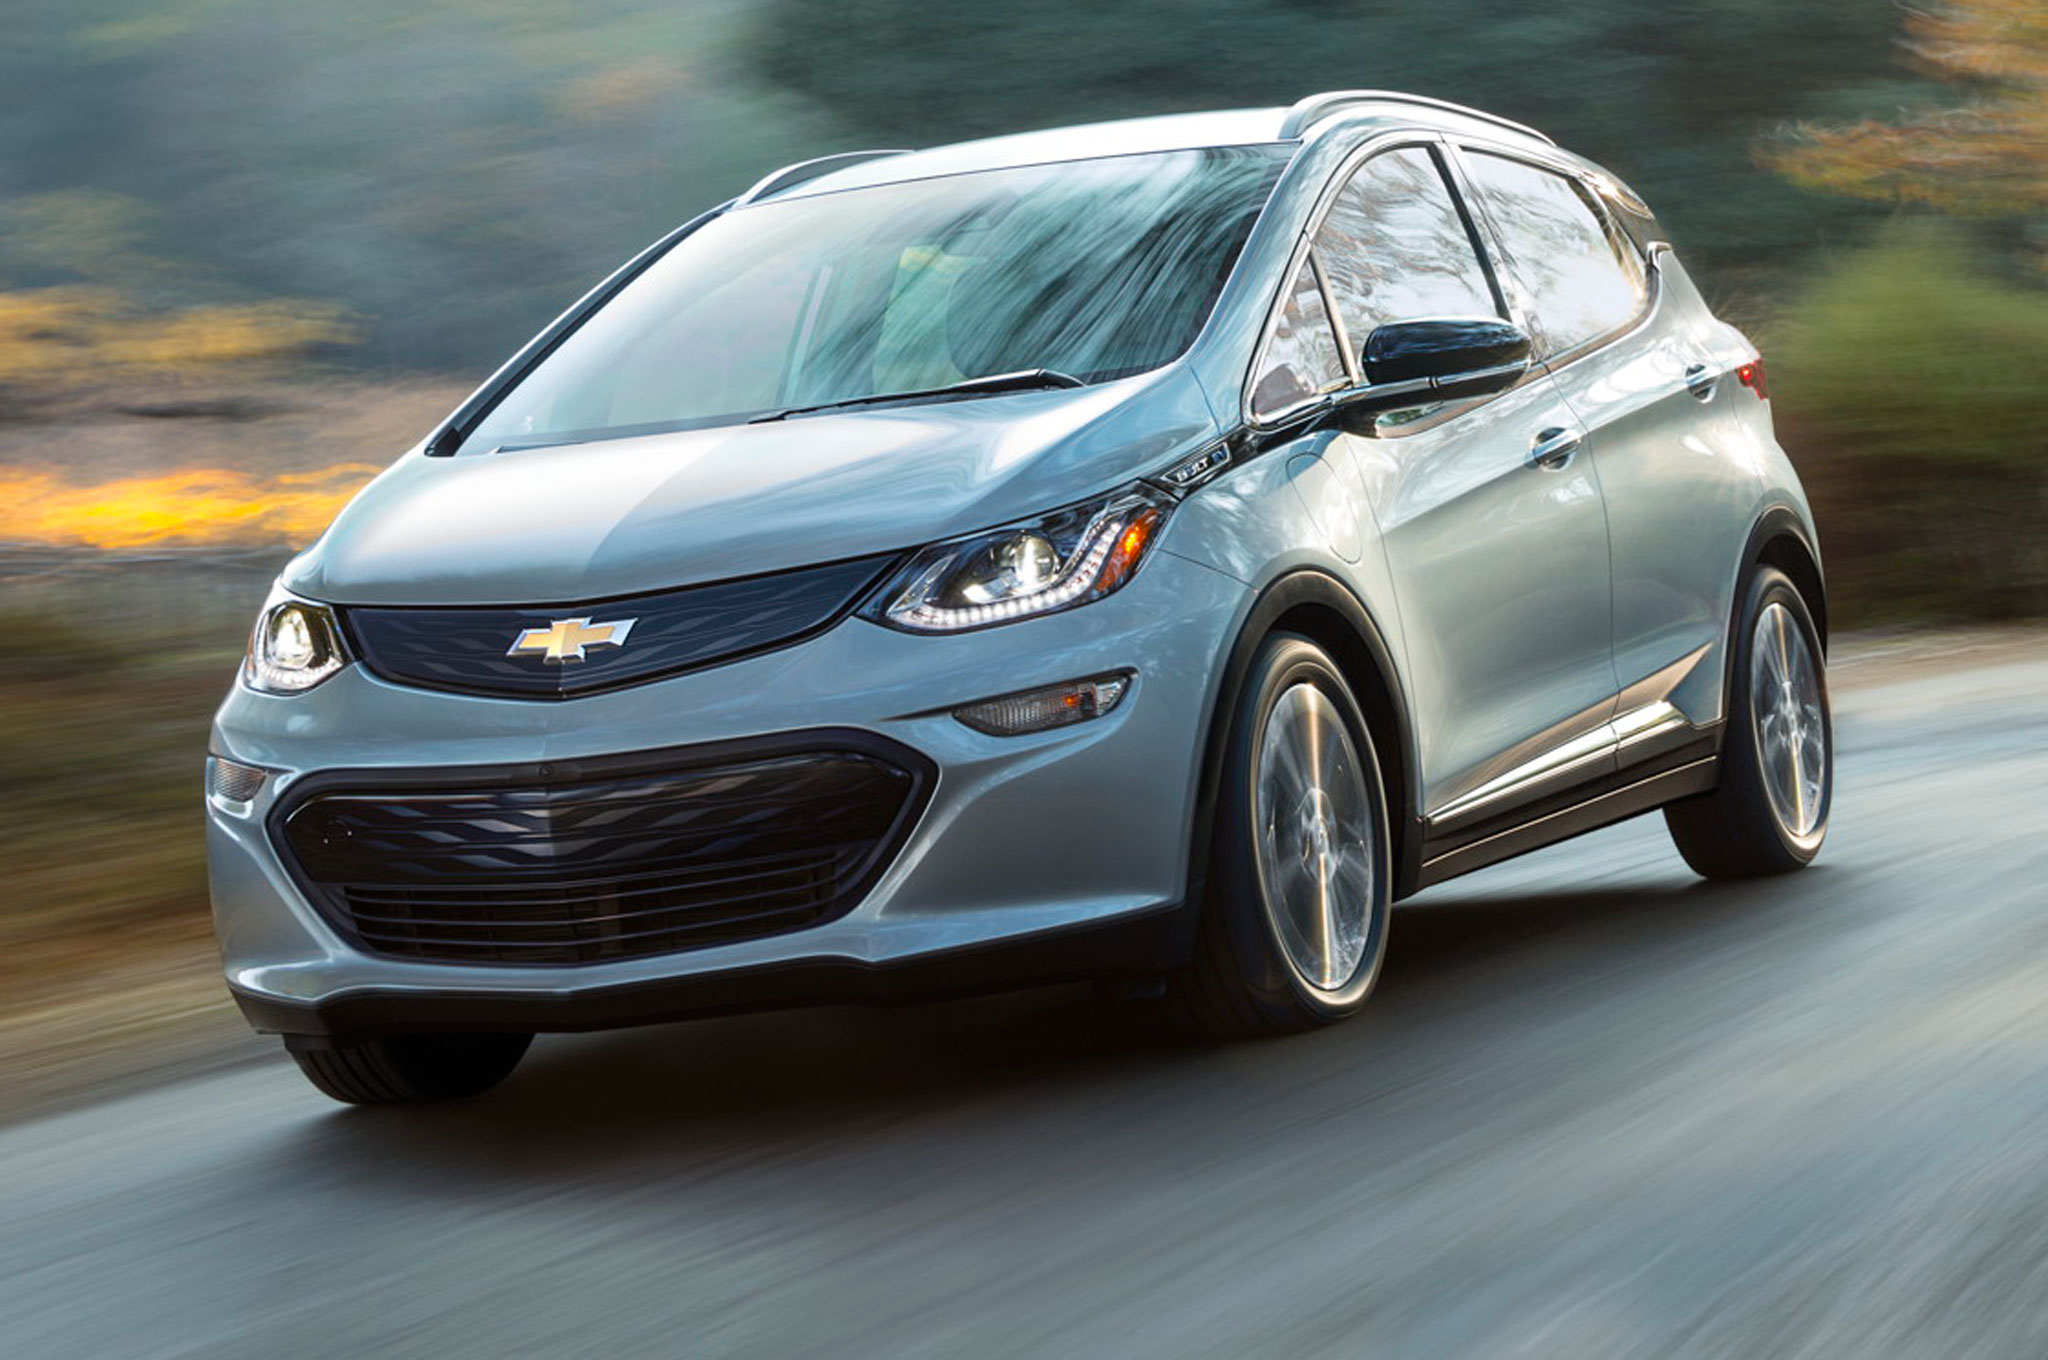 2017 Chevrolet Bolt EV Front View On Road3